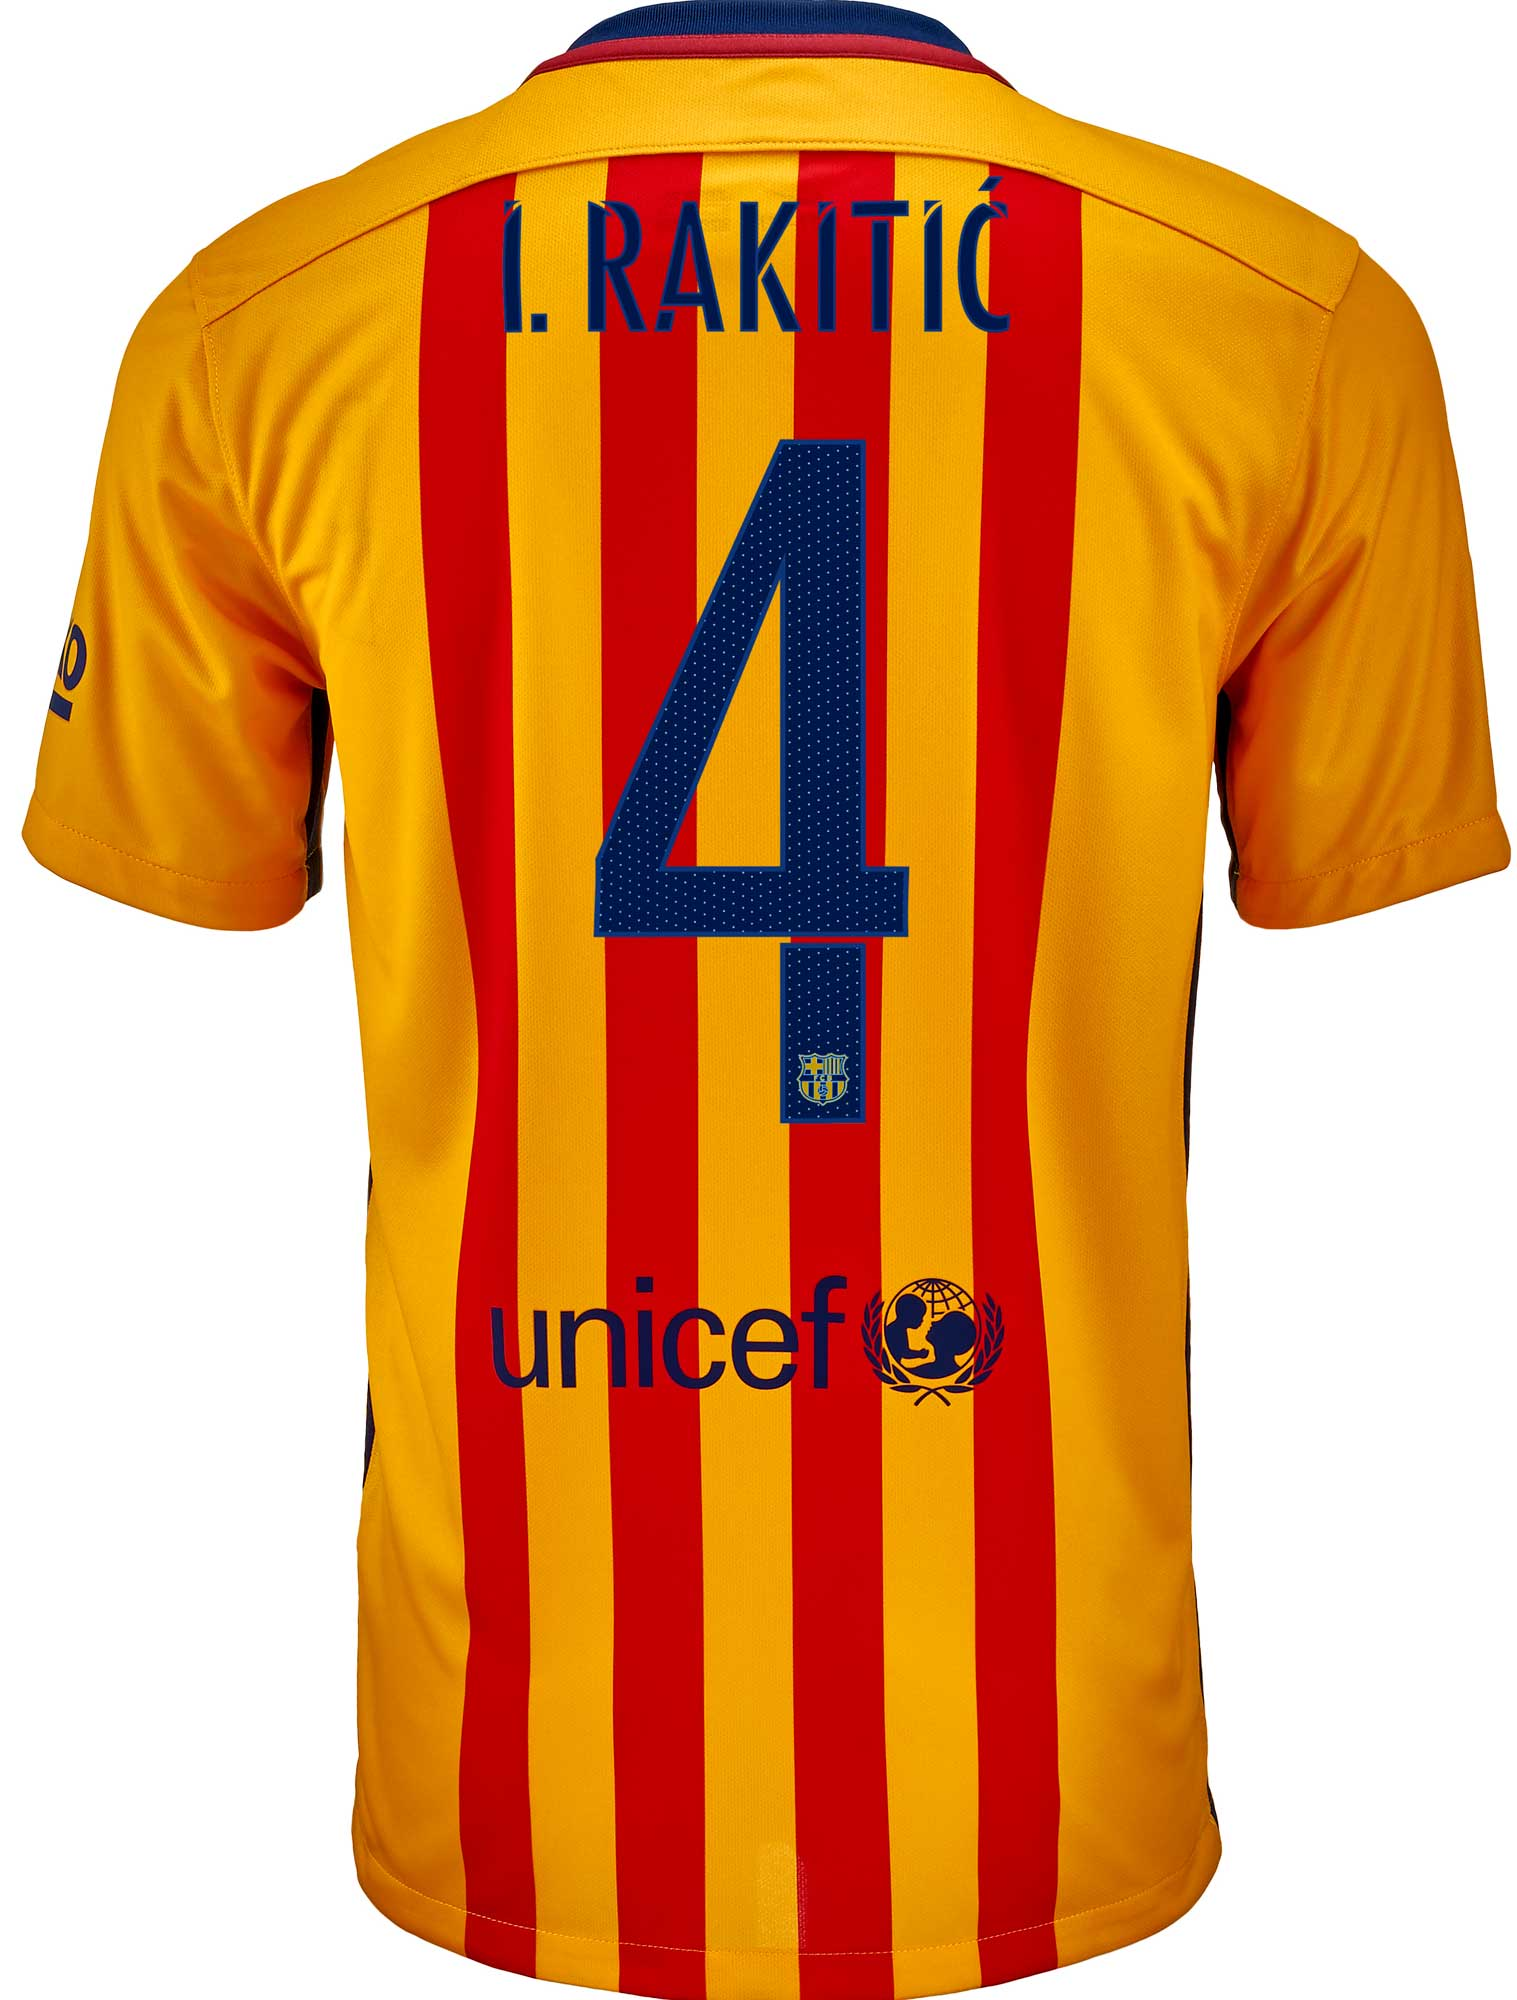 new styles 0edeb ddca7 2015 2016 barcelona soccer uniform jersey short sleeves with ...